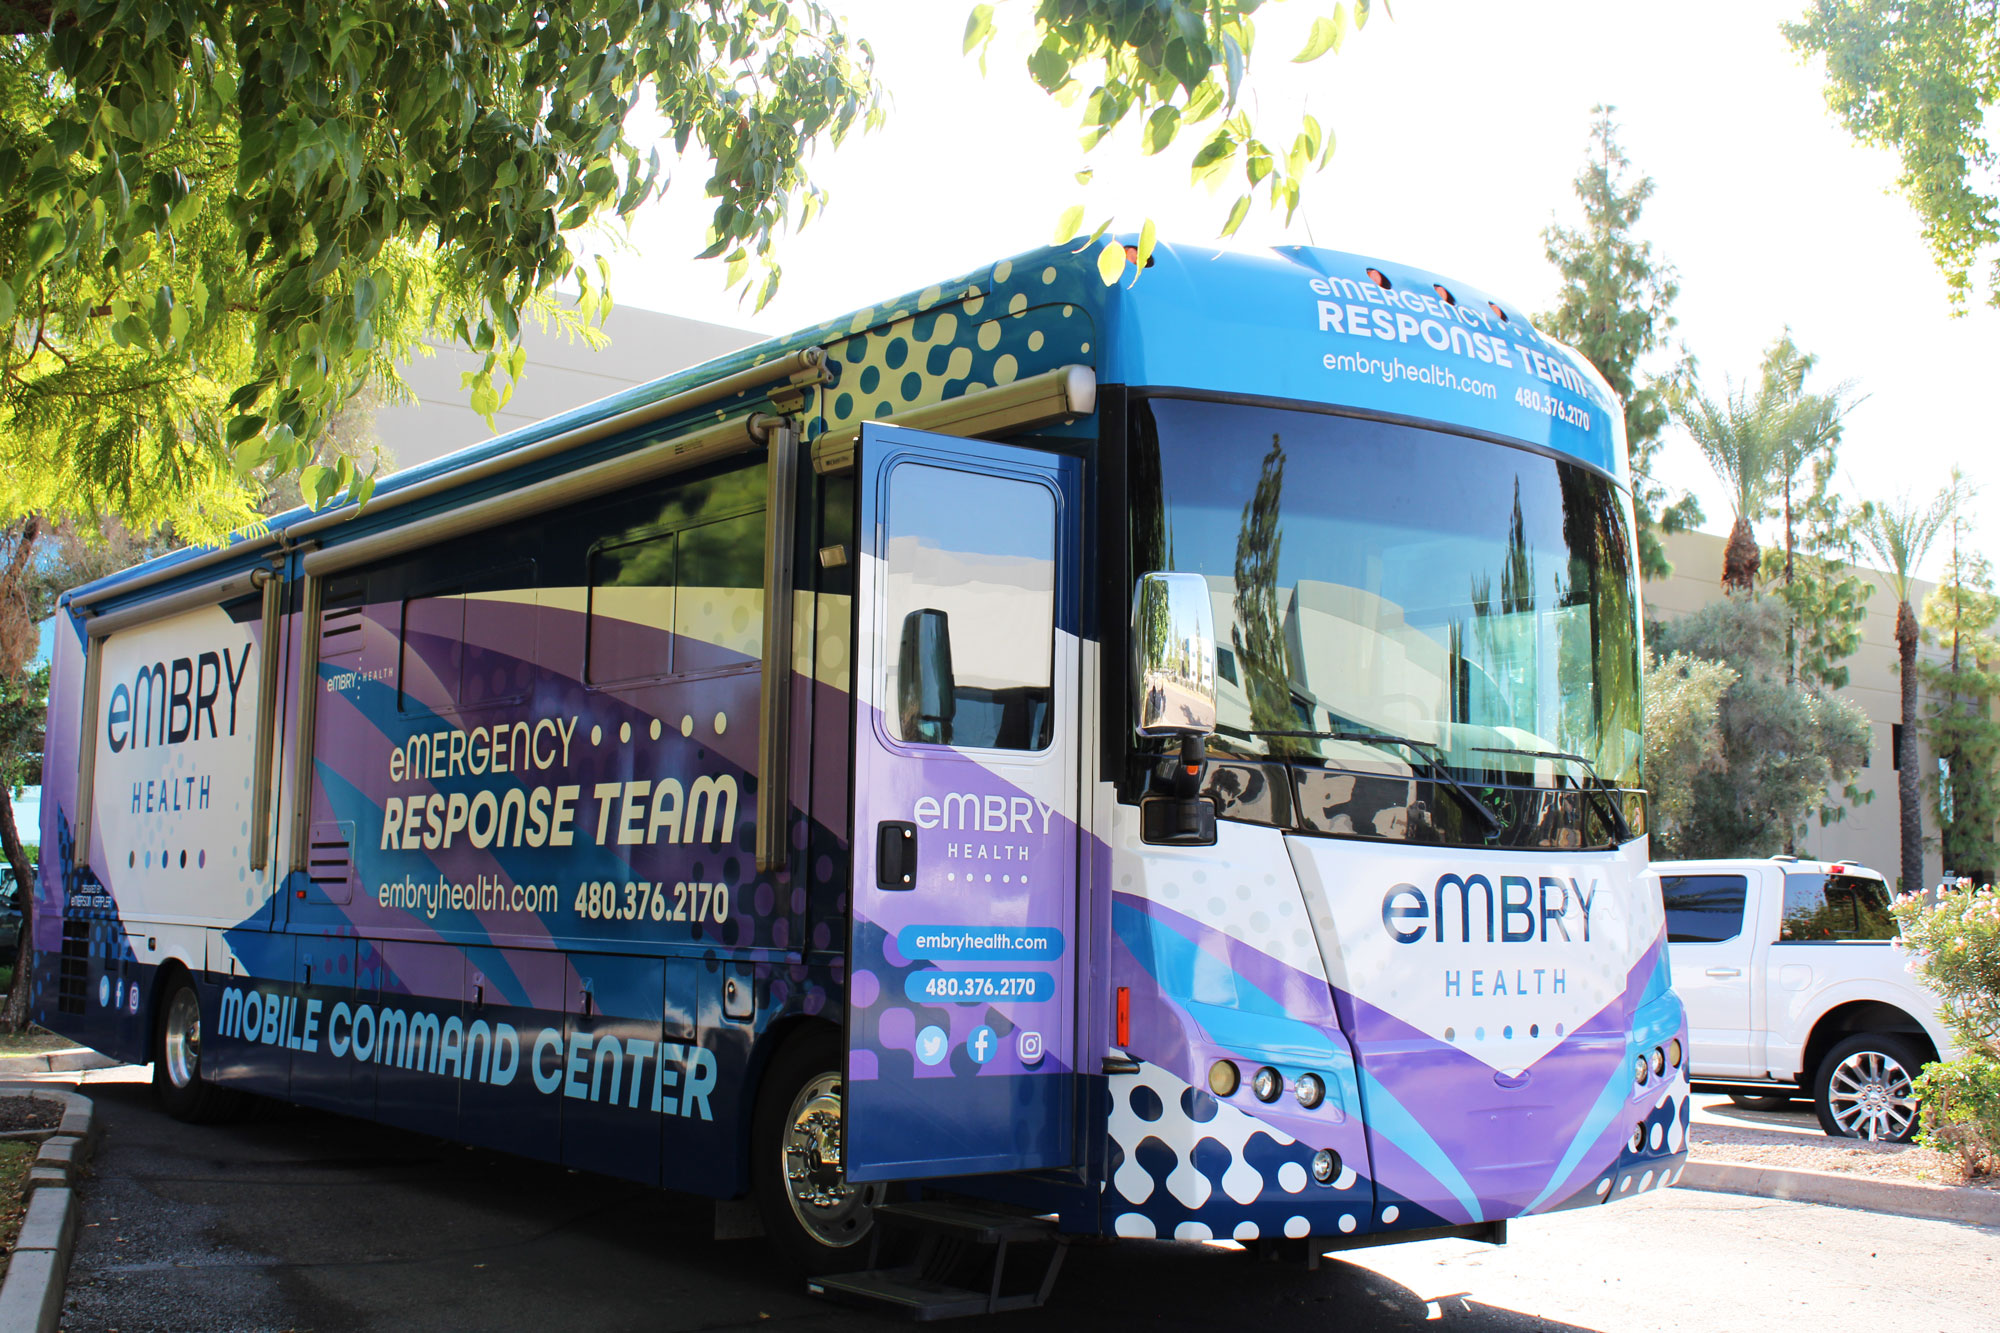 Embry Health now offers the convenience of high-quality healthcare services in your home. If you are a homebound patient, someone who can't drive, or can't access transportation, Embry Health will come to you to administer your COVID-19 vaccine.